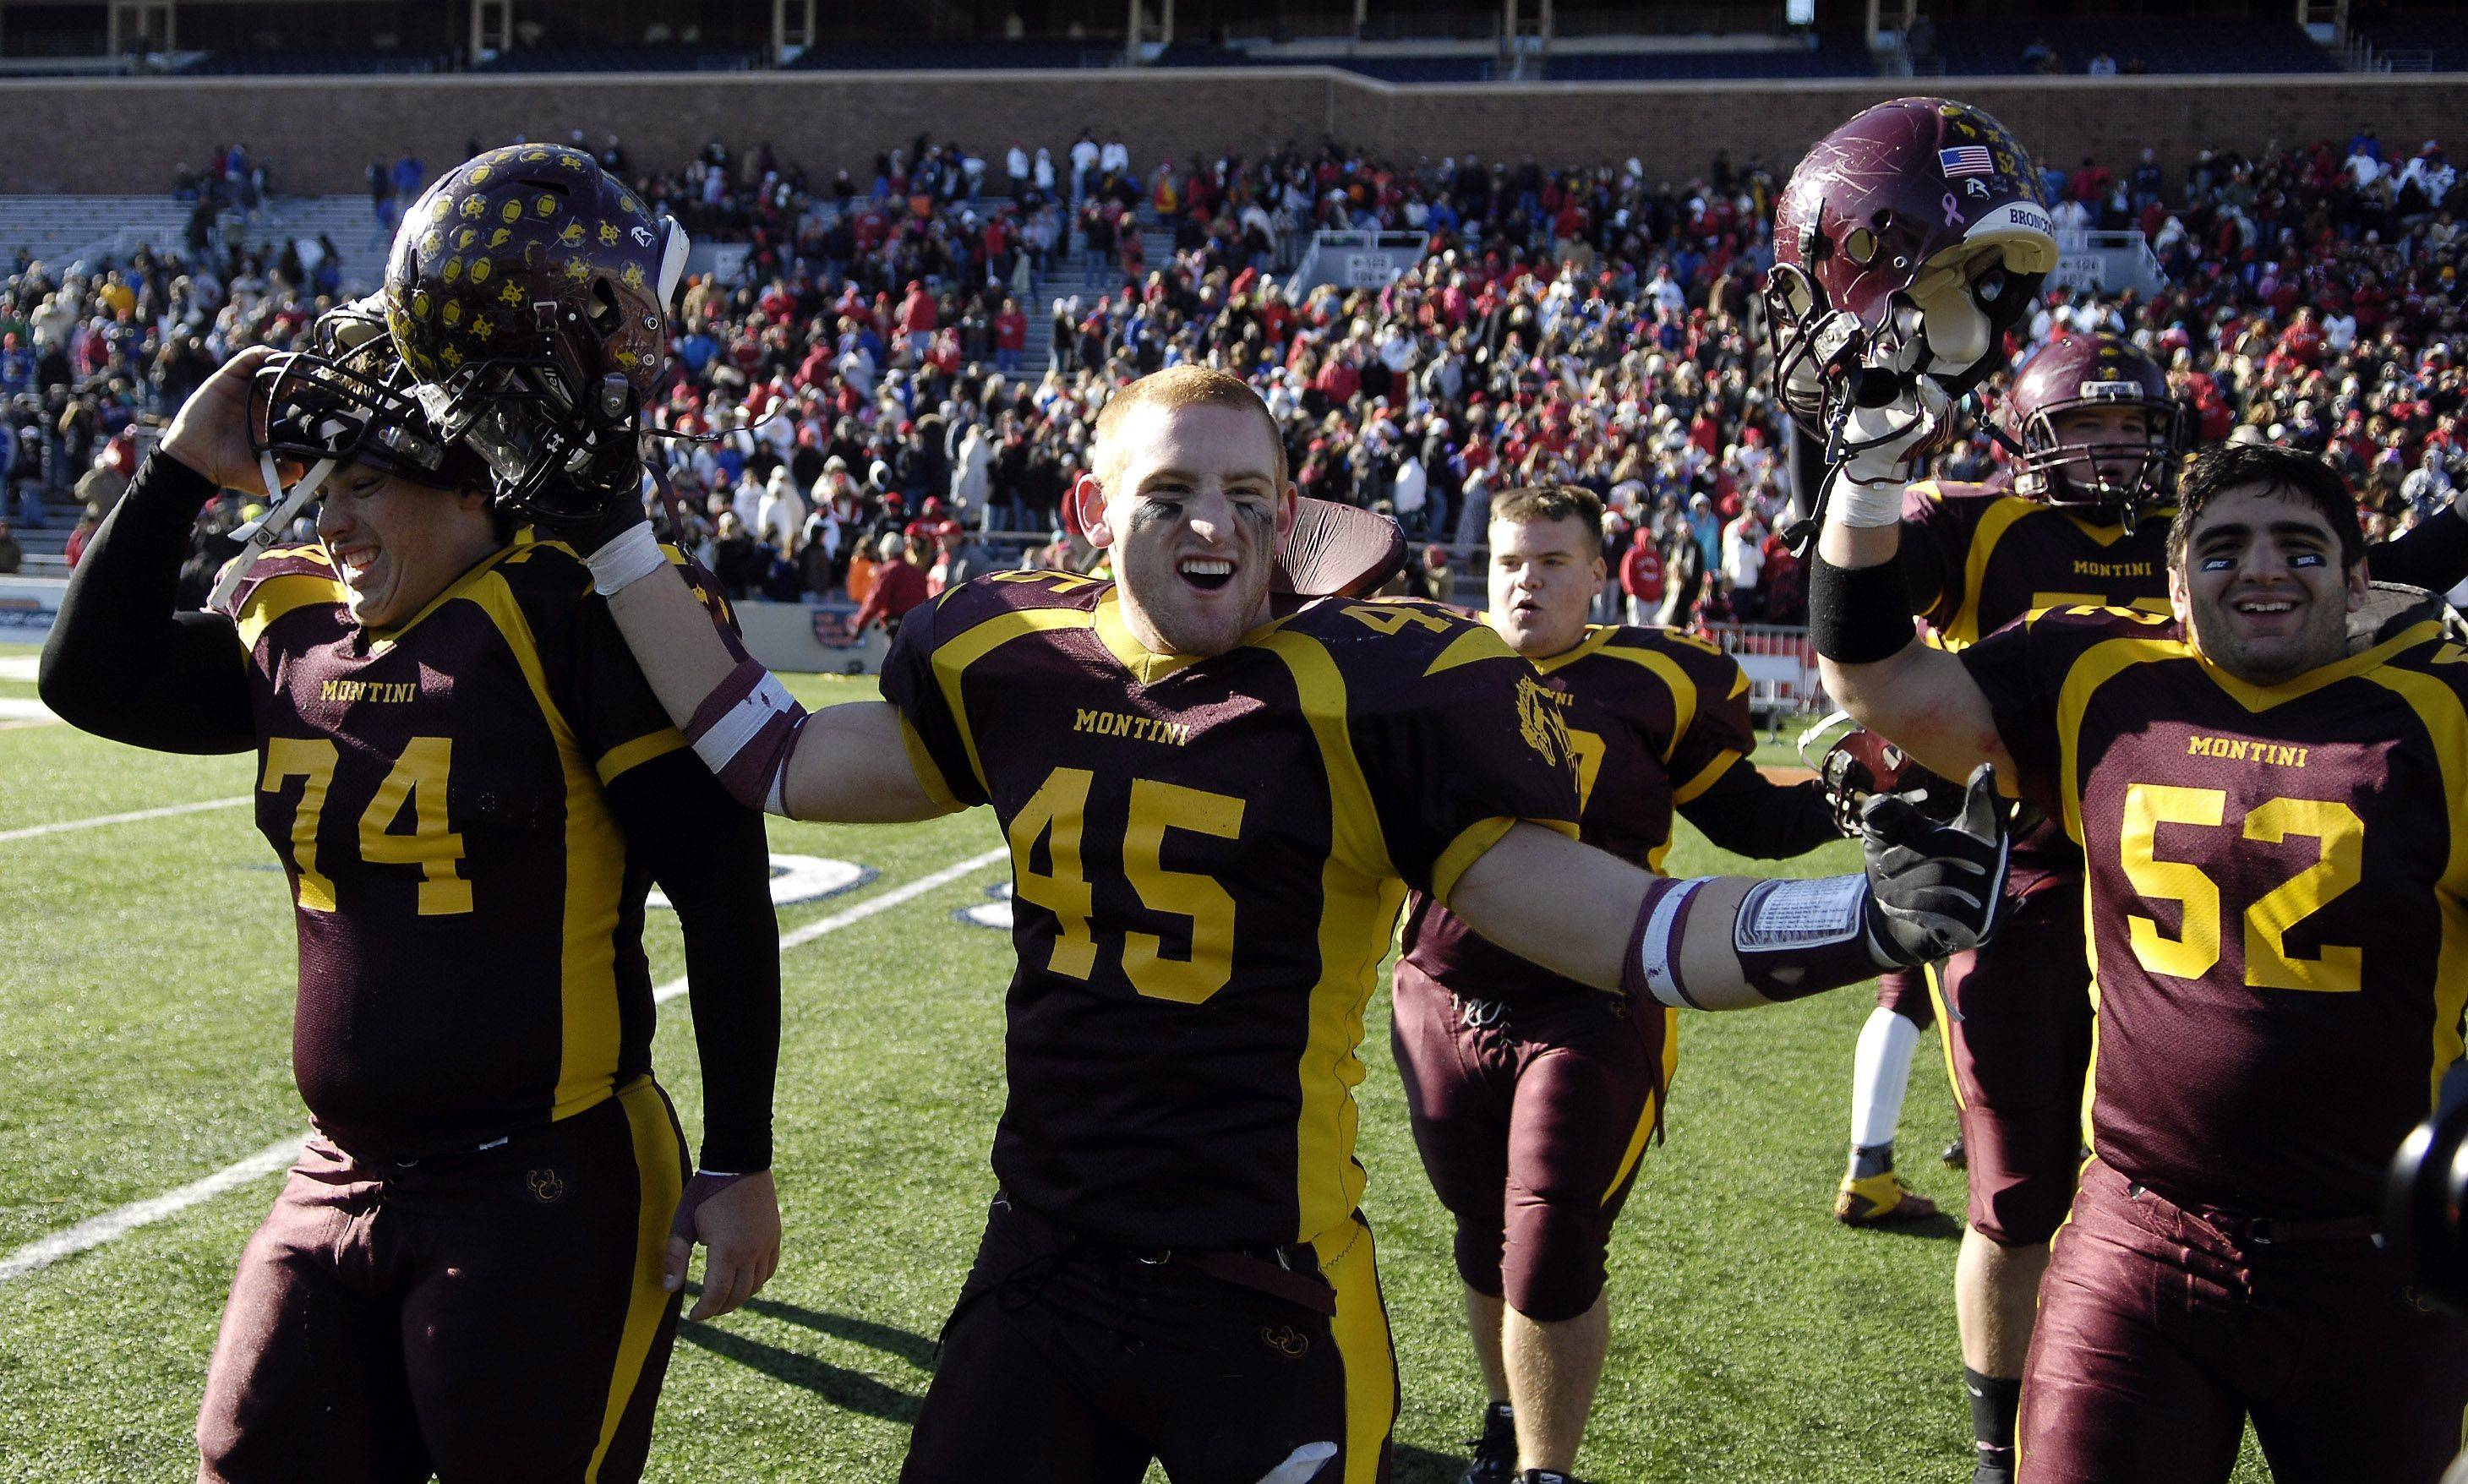 Montini's Alex Walters and teammates celebrate their win over Chatham Glenwood during the Class 5A state championsip in Champaign Saturday.